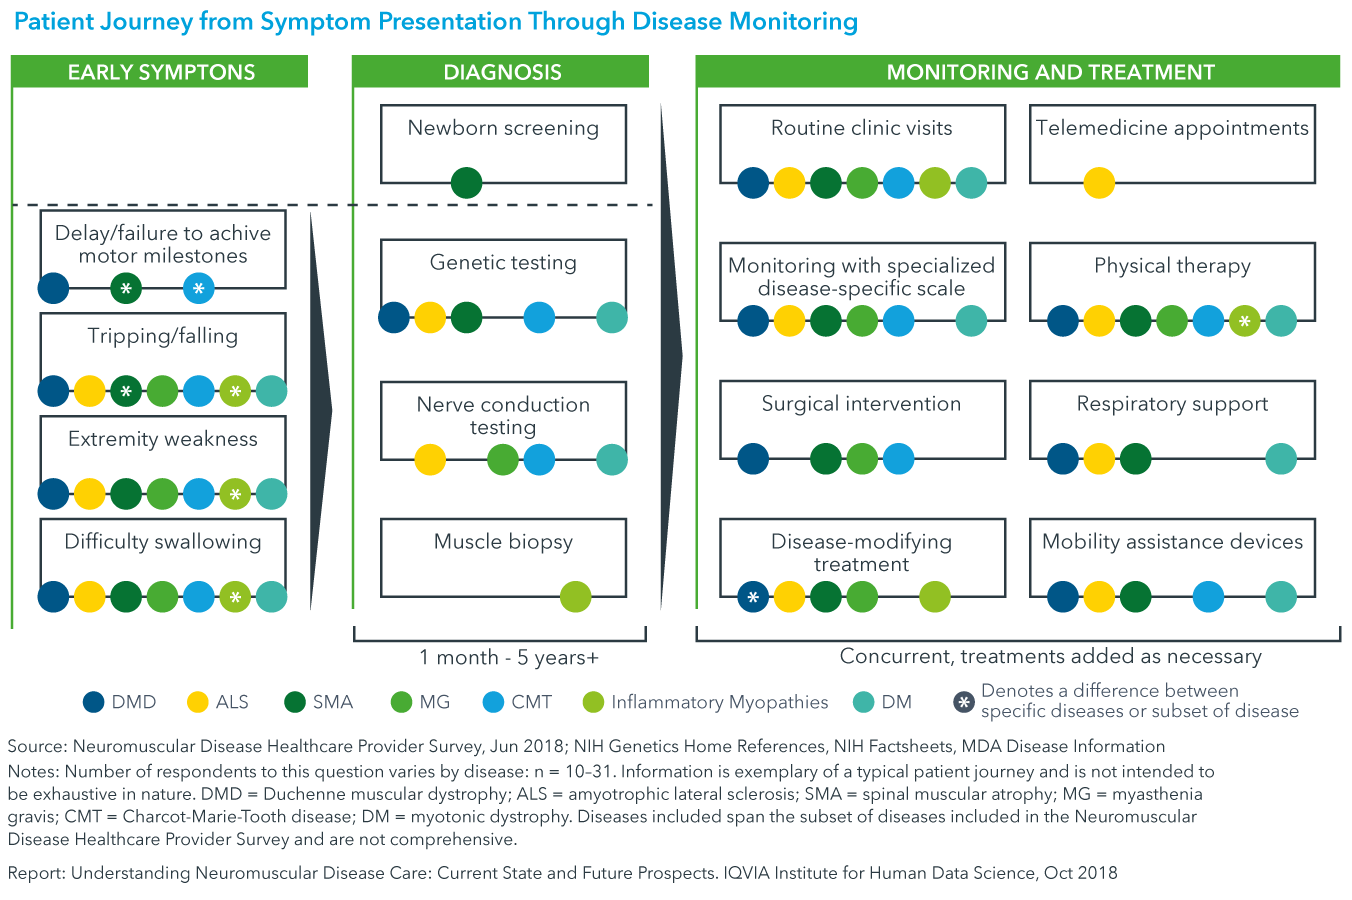 Chart 8: Patient Journey from Symptom Presentation Through Disease Monitoring